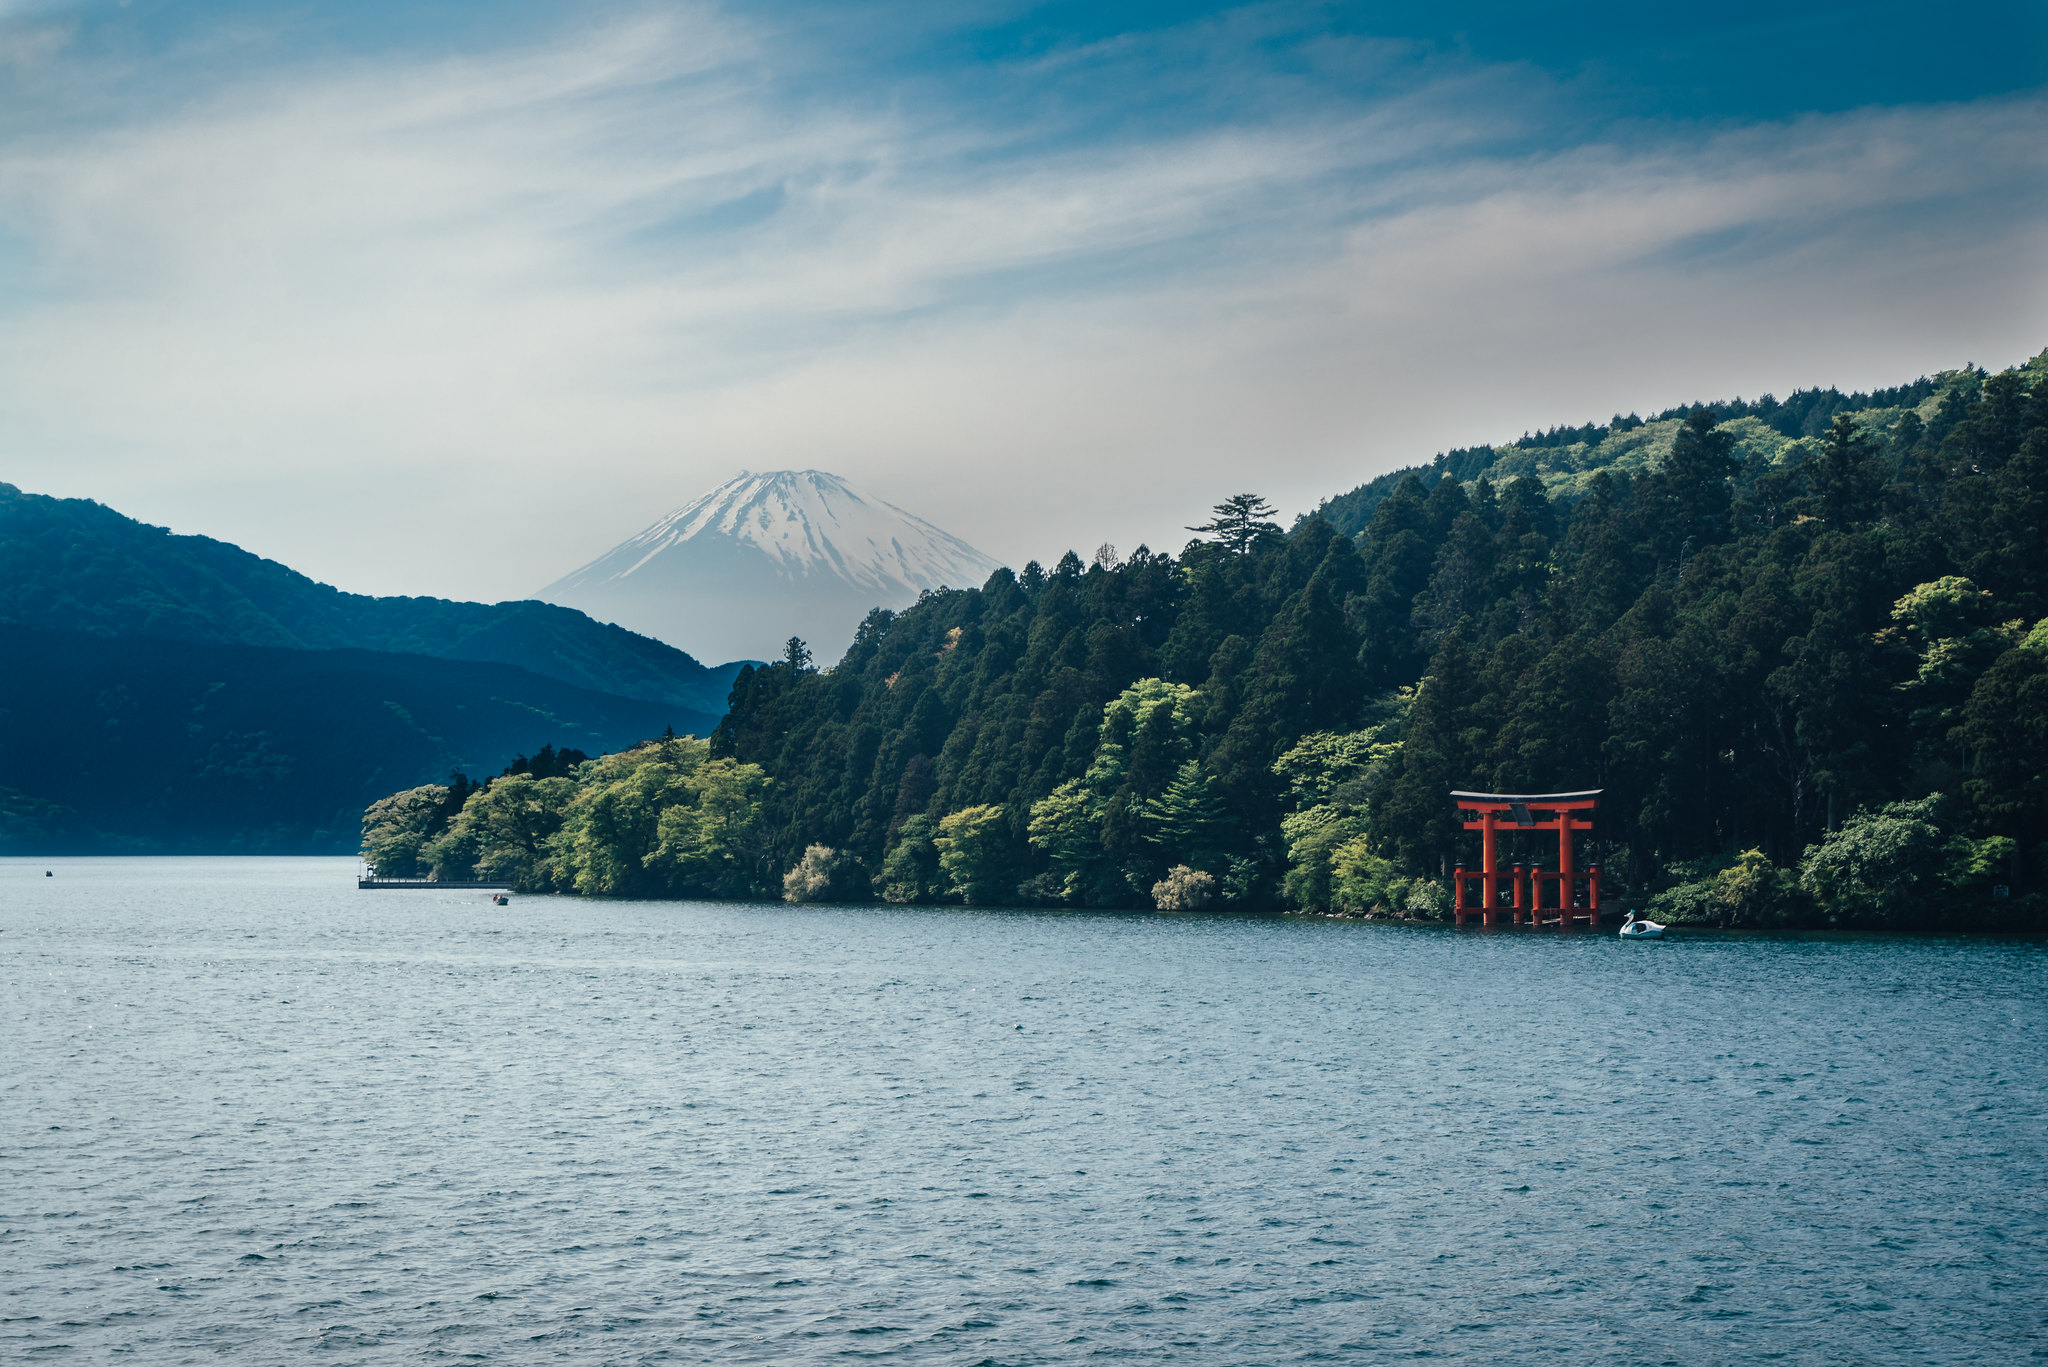 10 Best National Parks To Visit in Japan